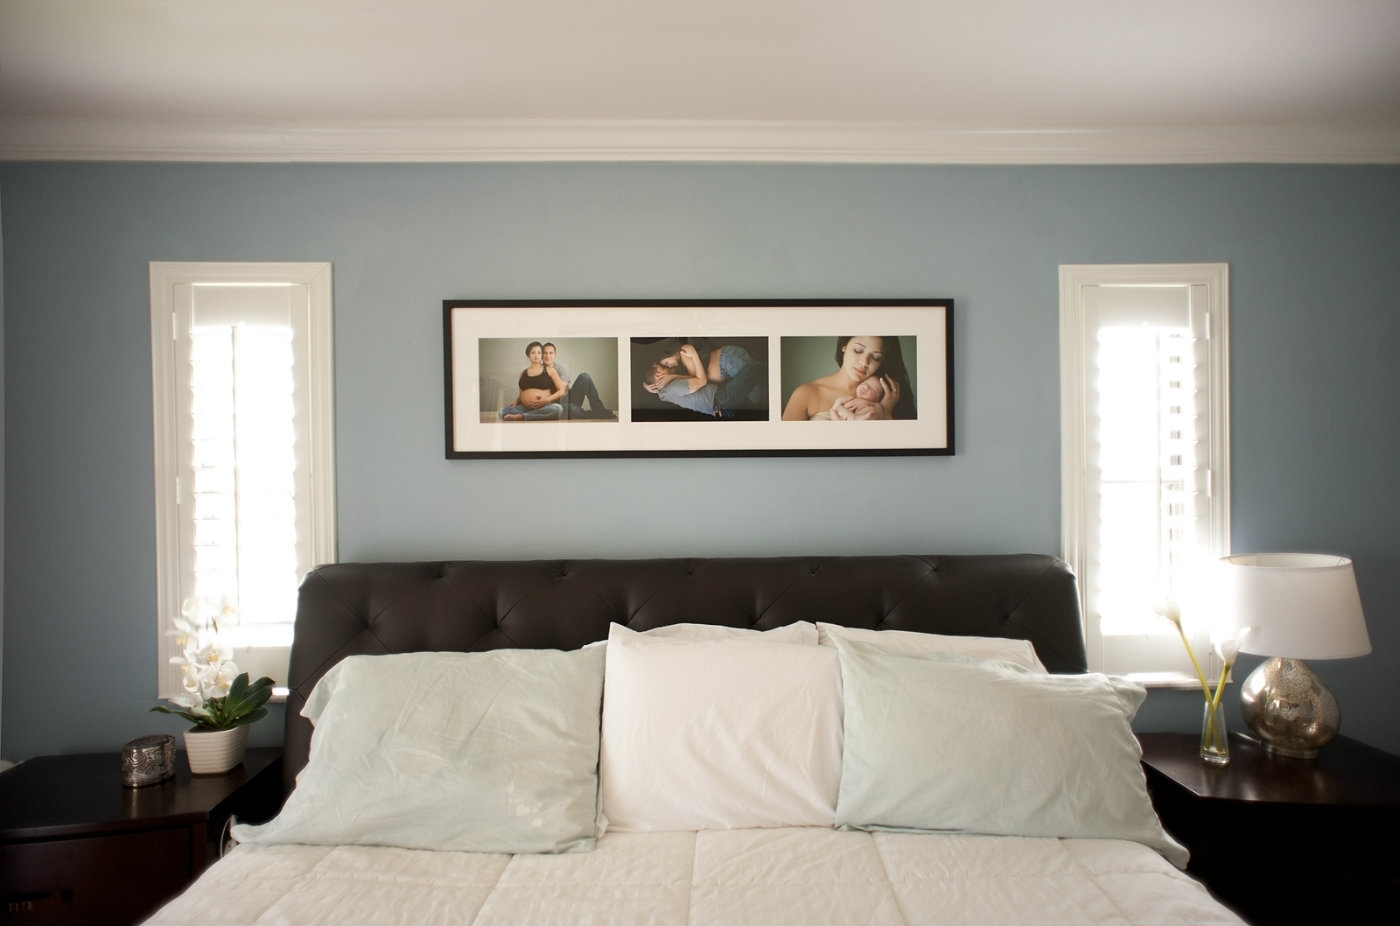 51 Wall Art Bedroom, Art Wall Decor Decorating Ideas Gallery In with Newest Framed Art Prints For Bedroom